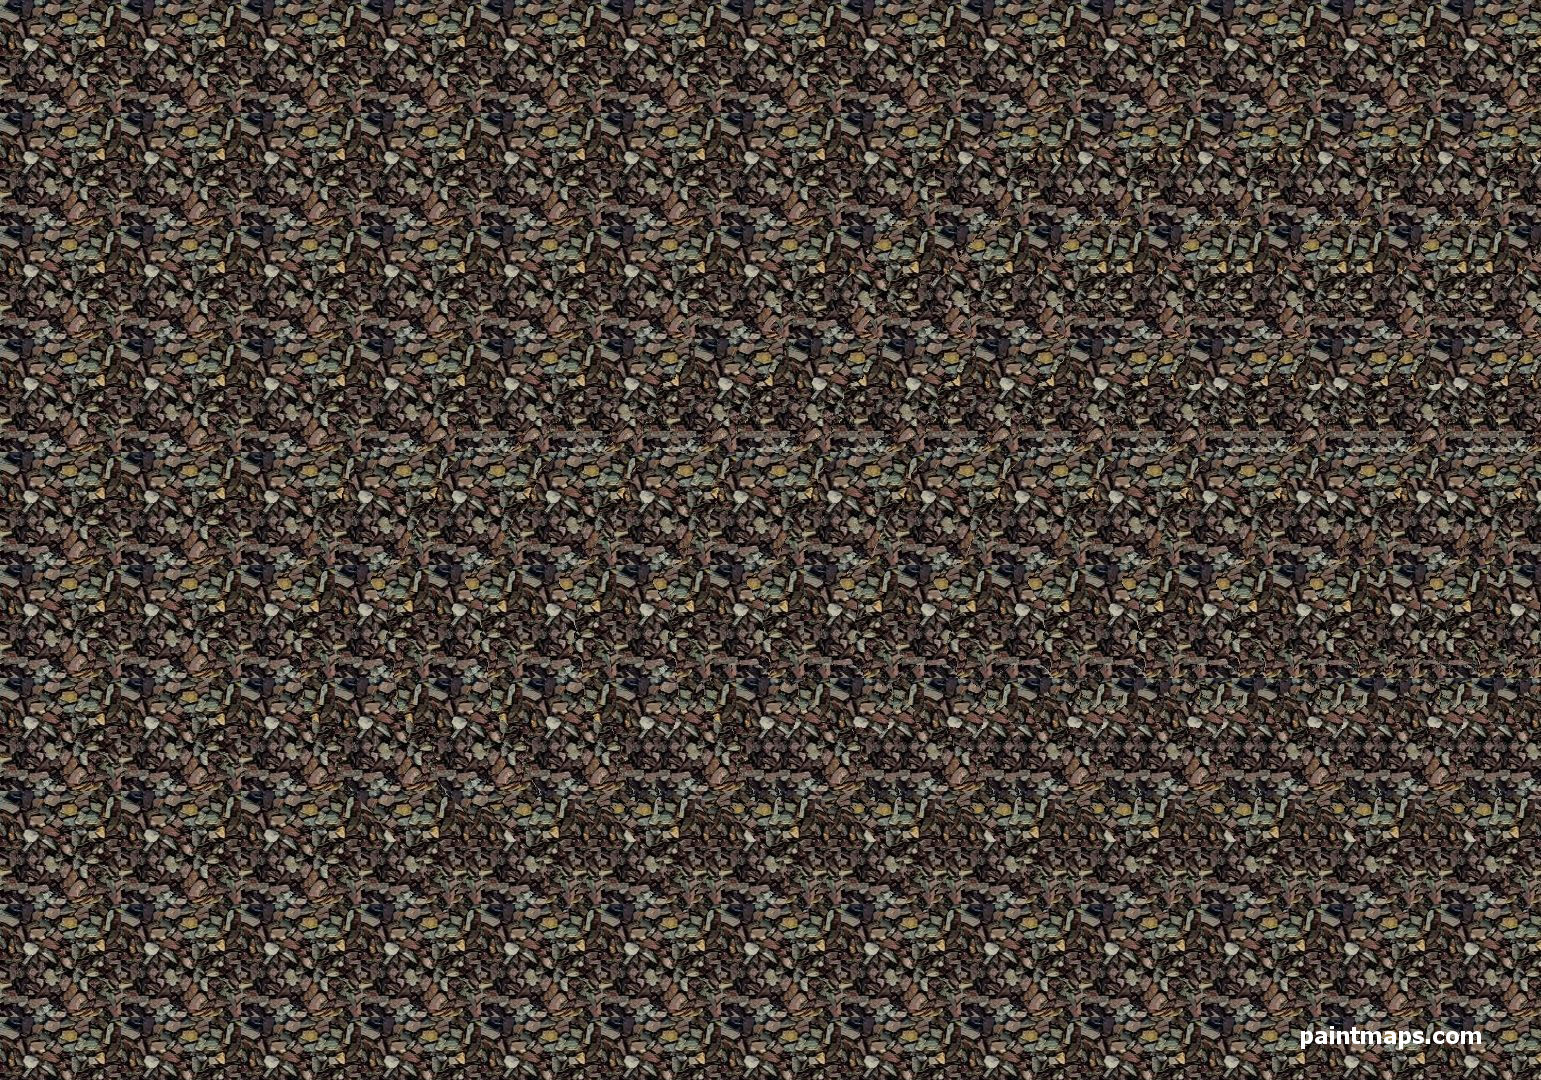 CHAD Map in 3D Stereogram (Magic Eye)